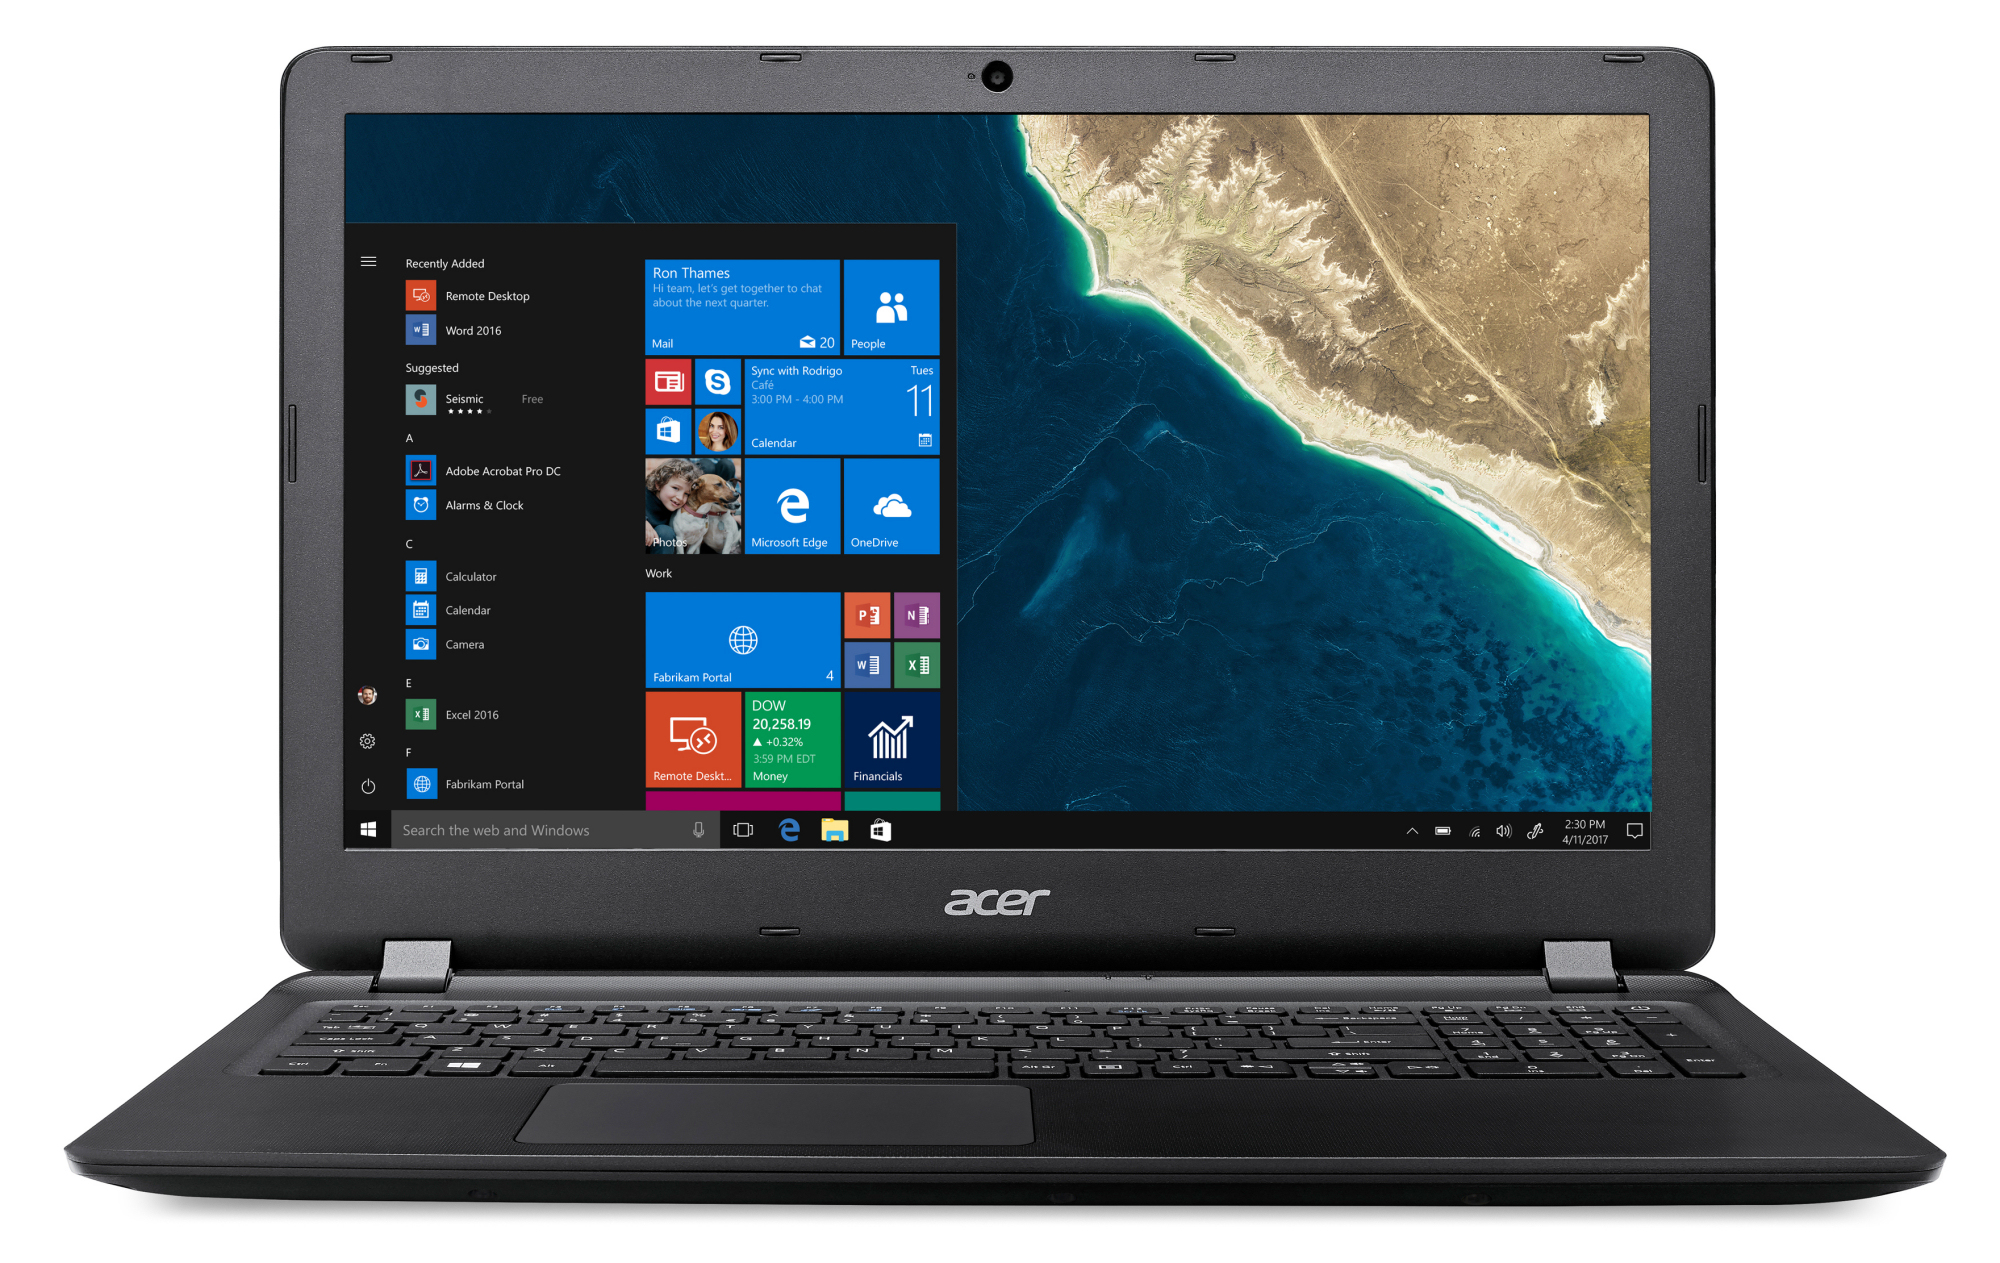 Acer Extensa 2510 Intel WLAN Driver Windows